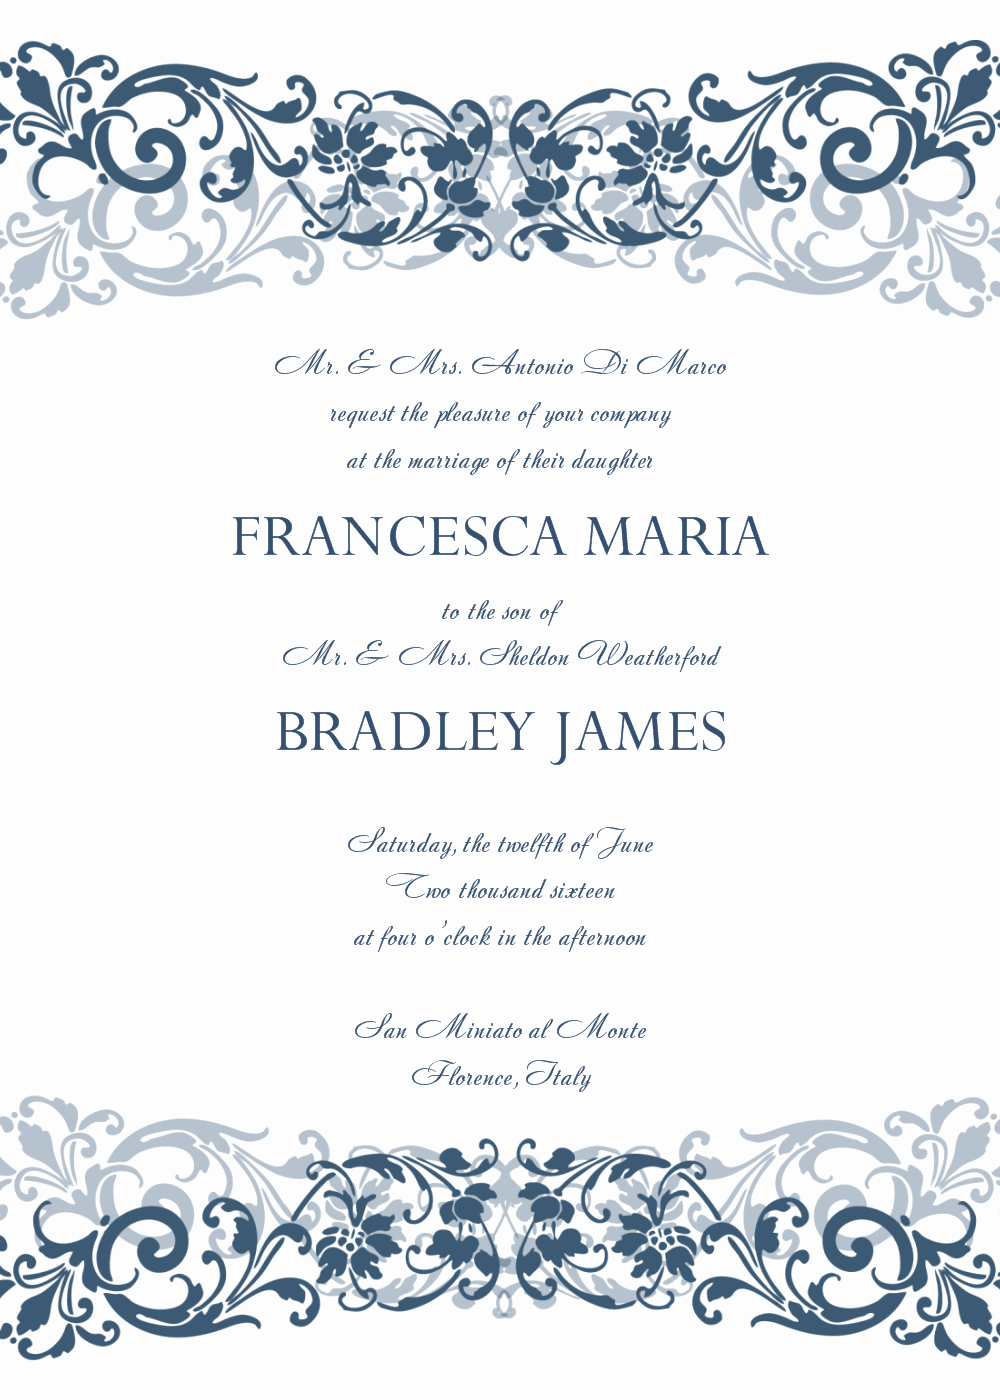 Free Wedding Invitation Template Lovely 30 Free Wedding Invitations Templates